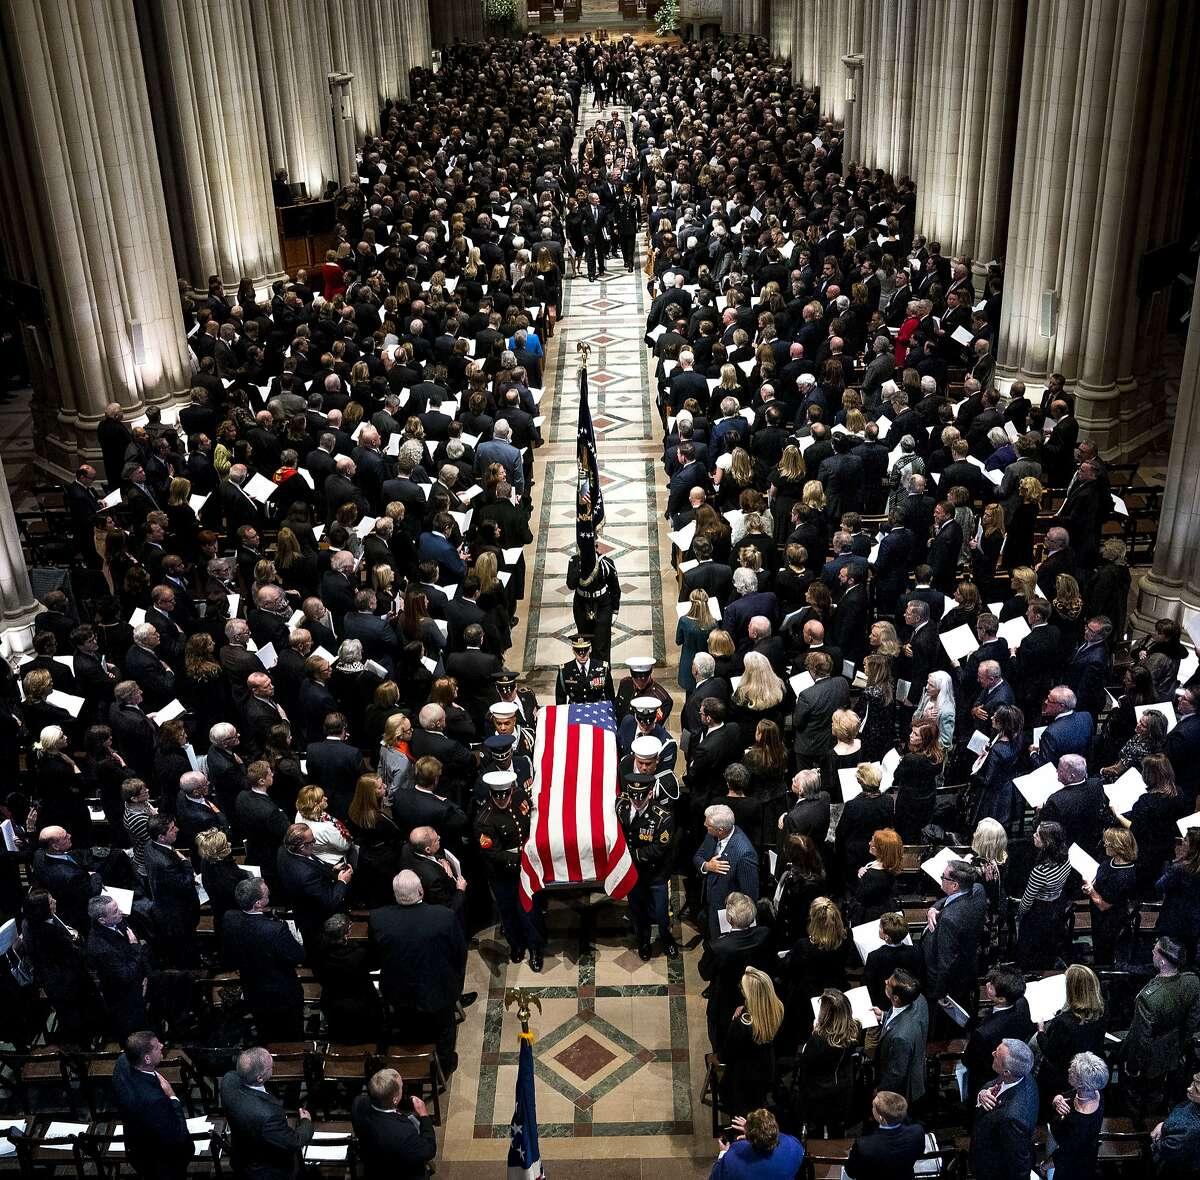 The coffin bearing the remains of former President George H.W. Bush is carried out after his funeral at the National Cathedral in Washington on Wednesday, Dec. 5, 2018.